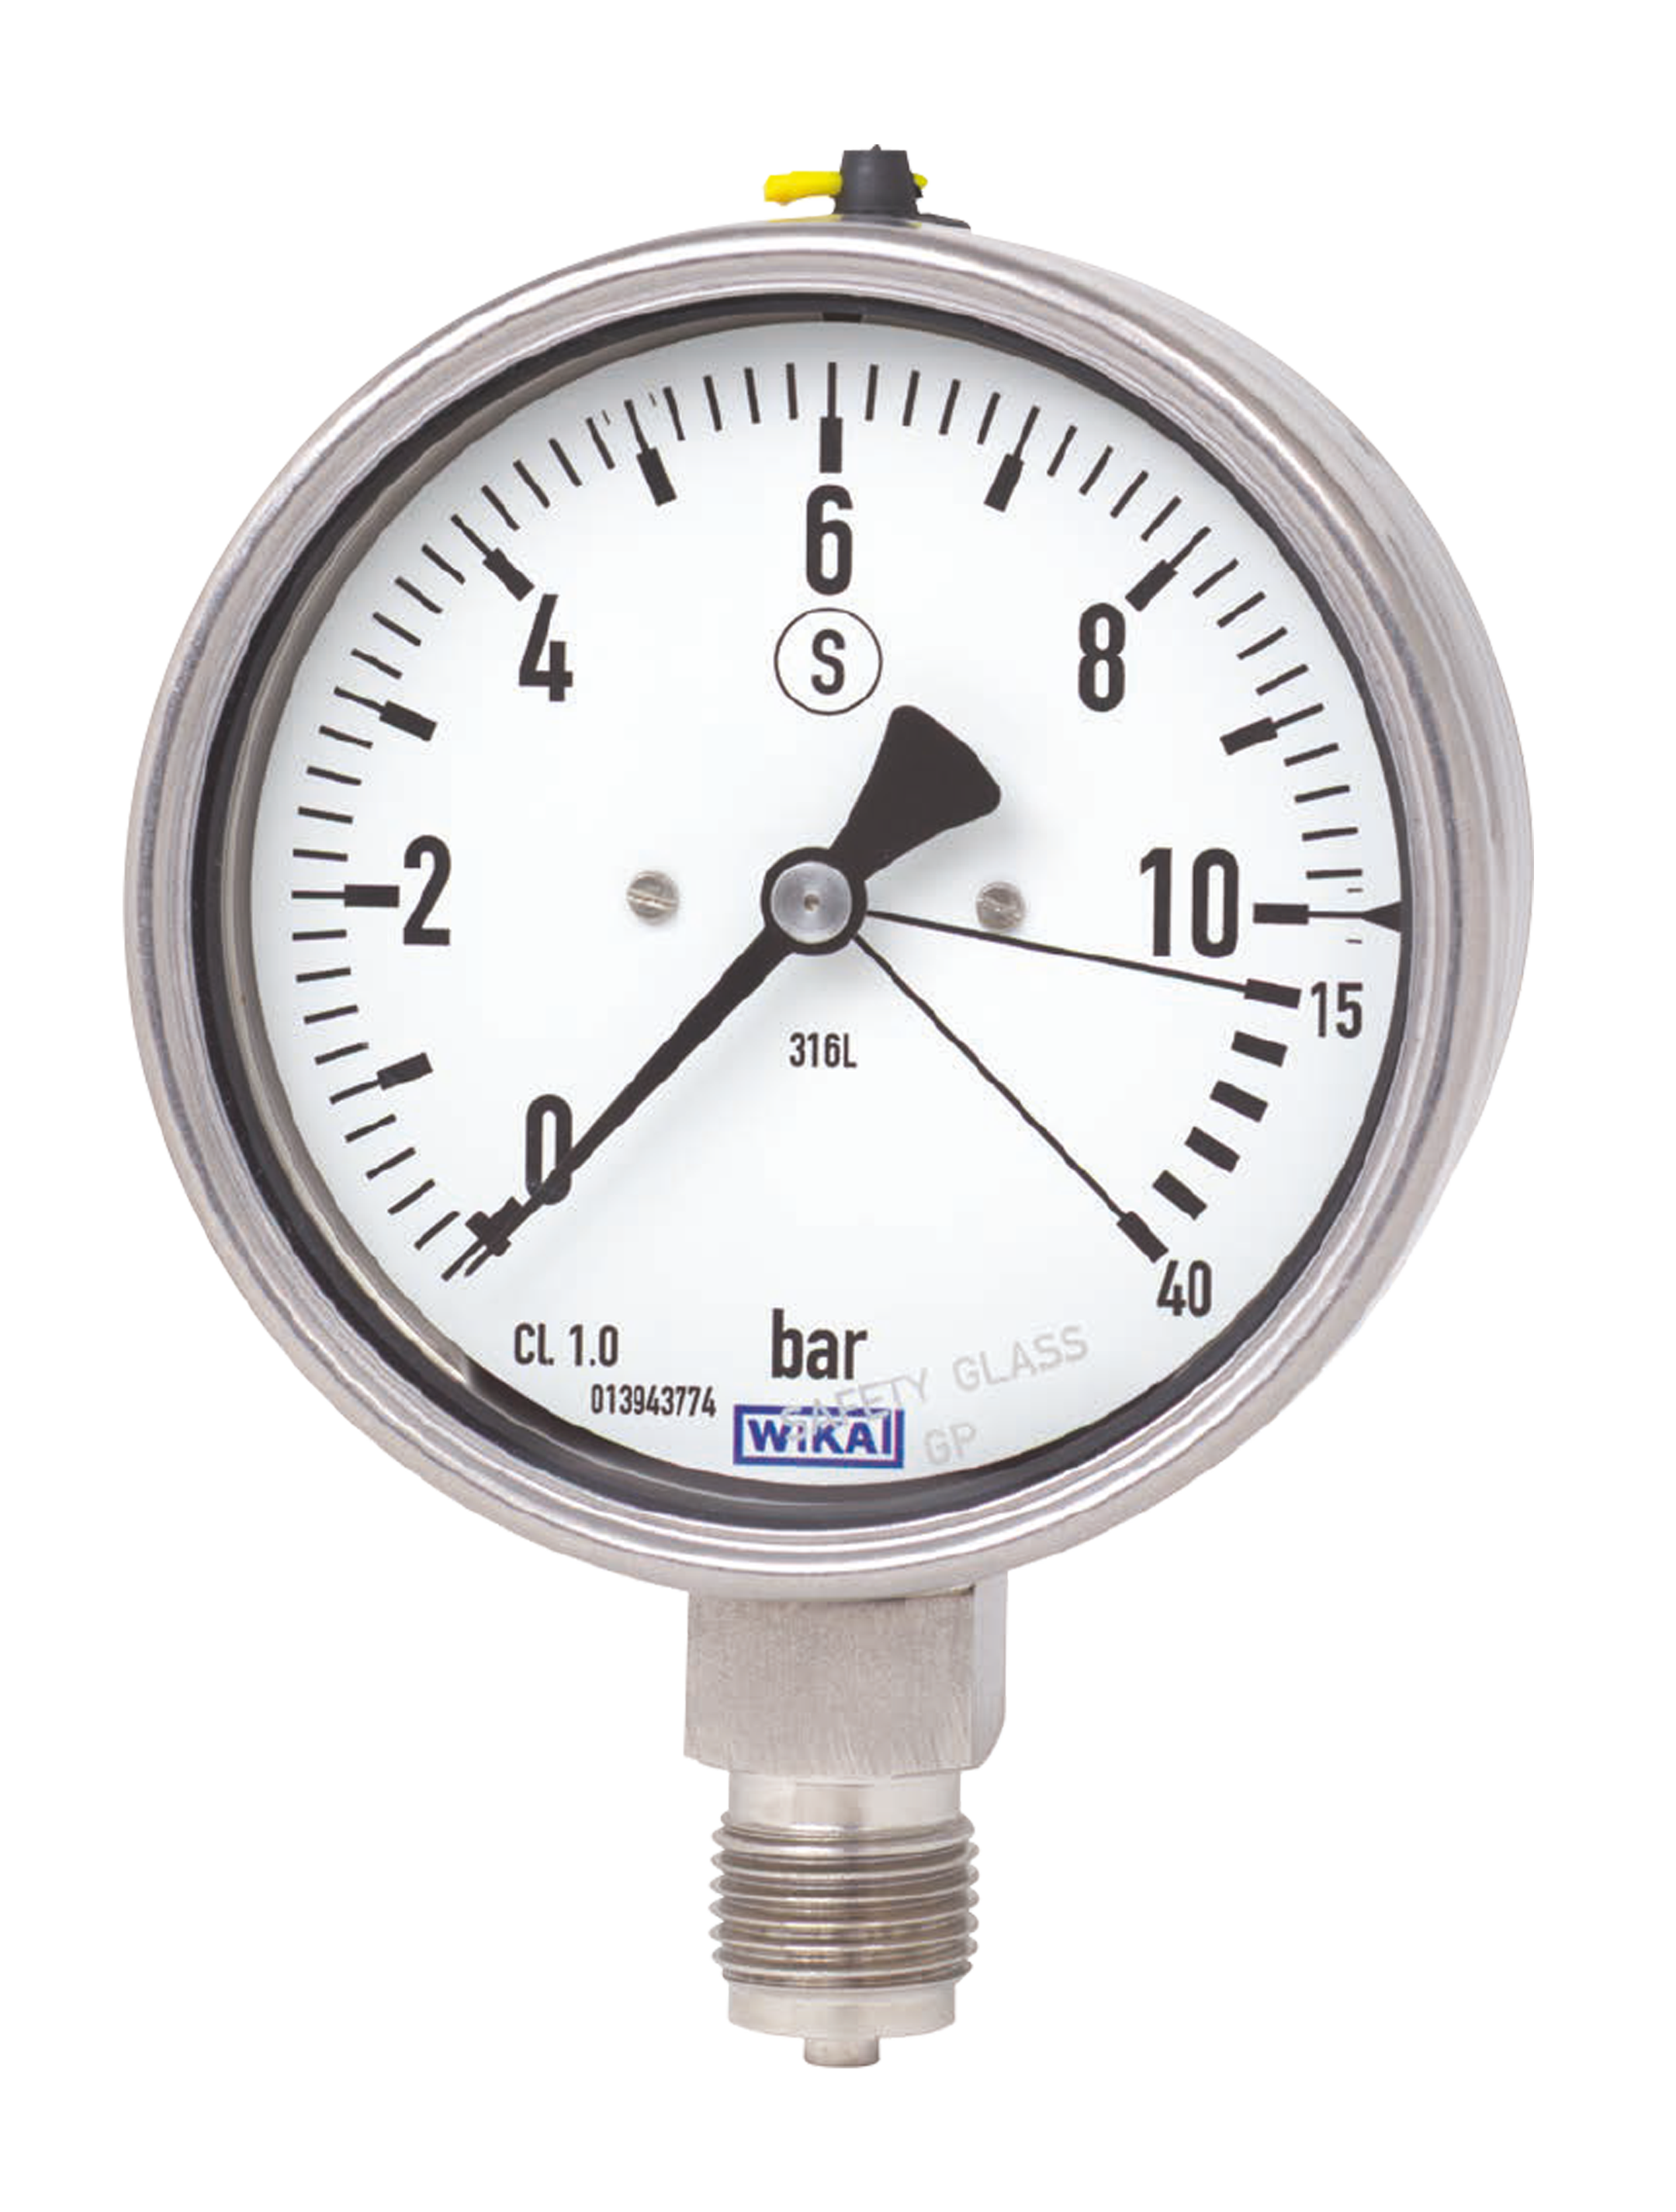 WIKA manometer type 23x.36